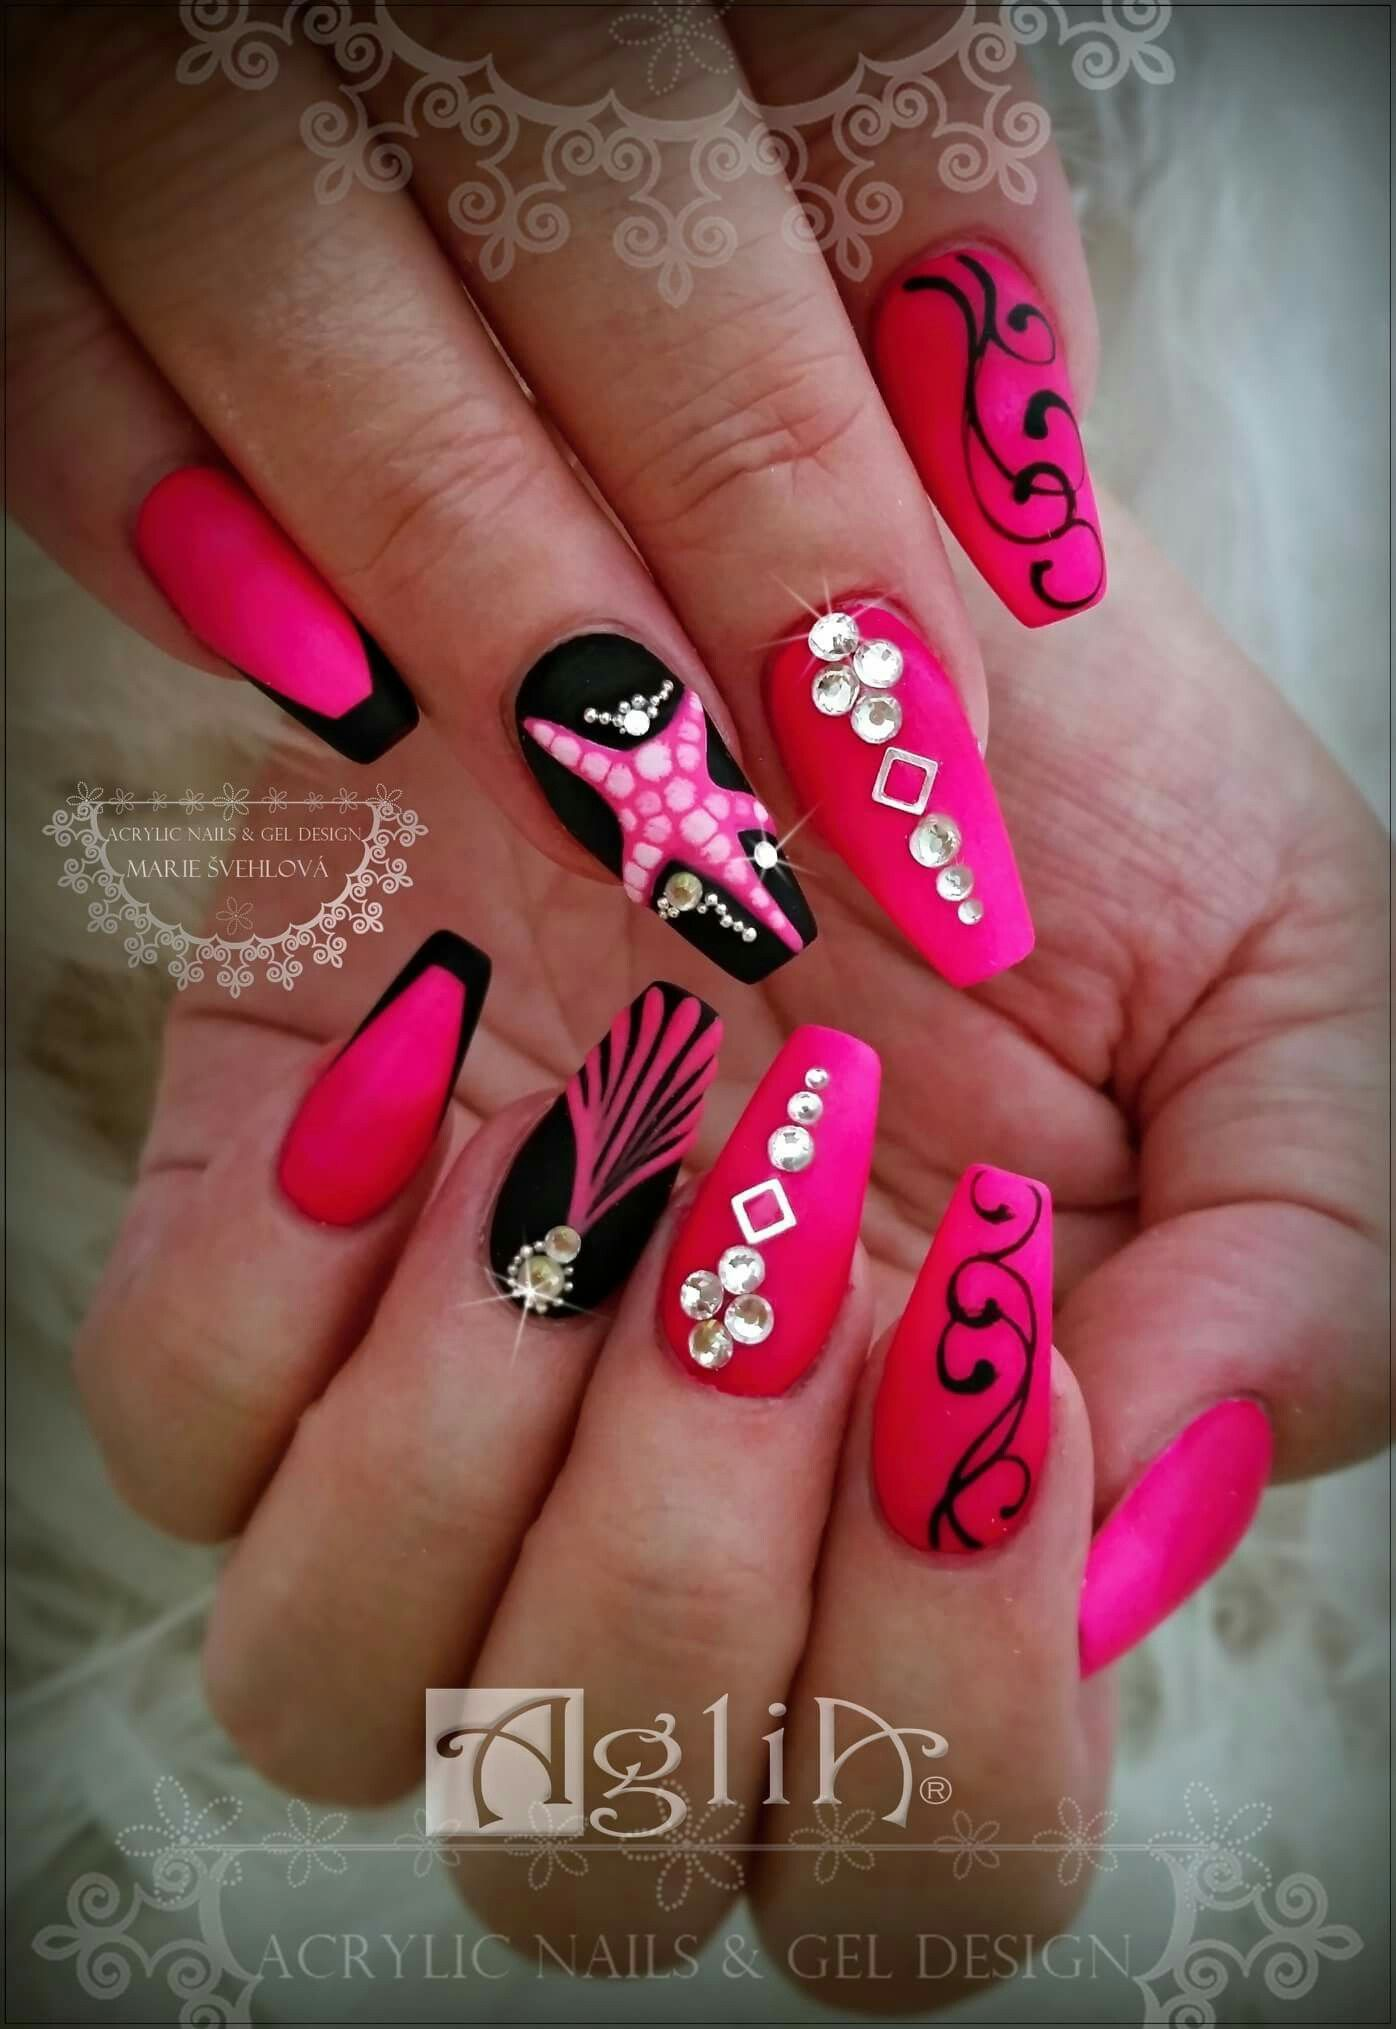 Acrylic Nails Gel Design Neon Pink Nails Summer Nails